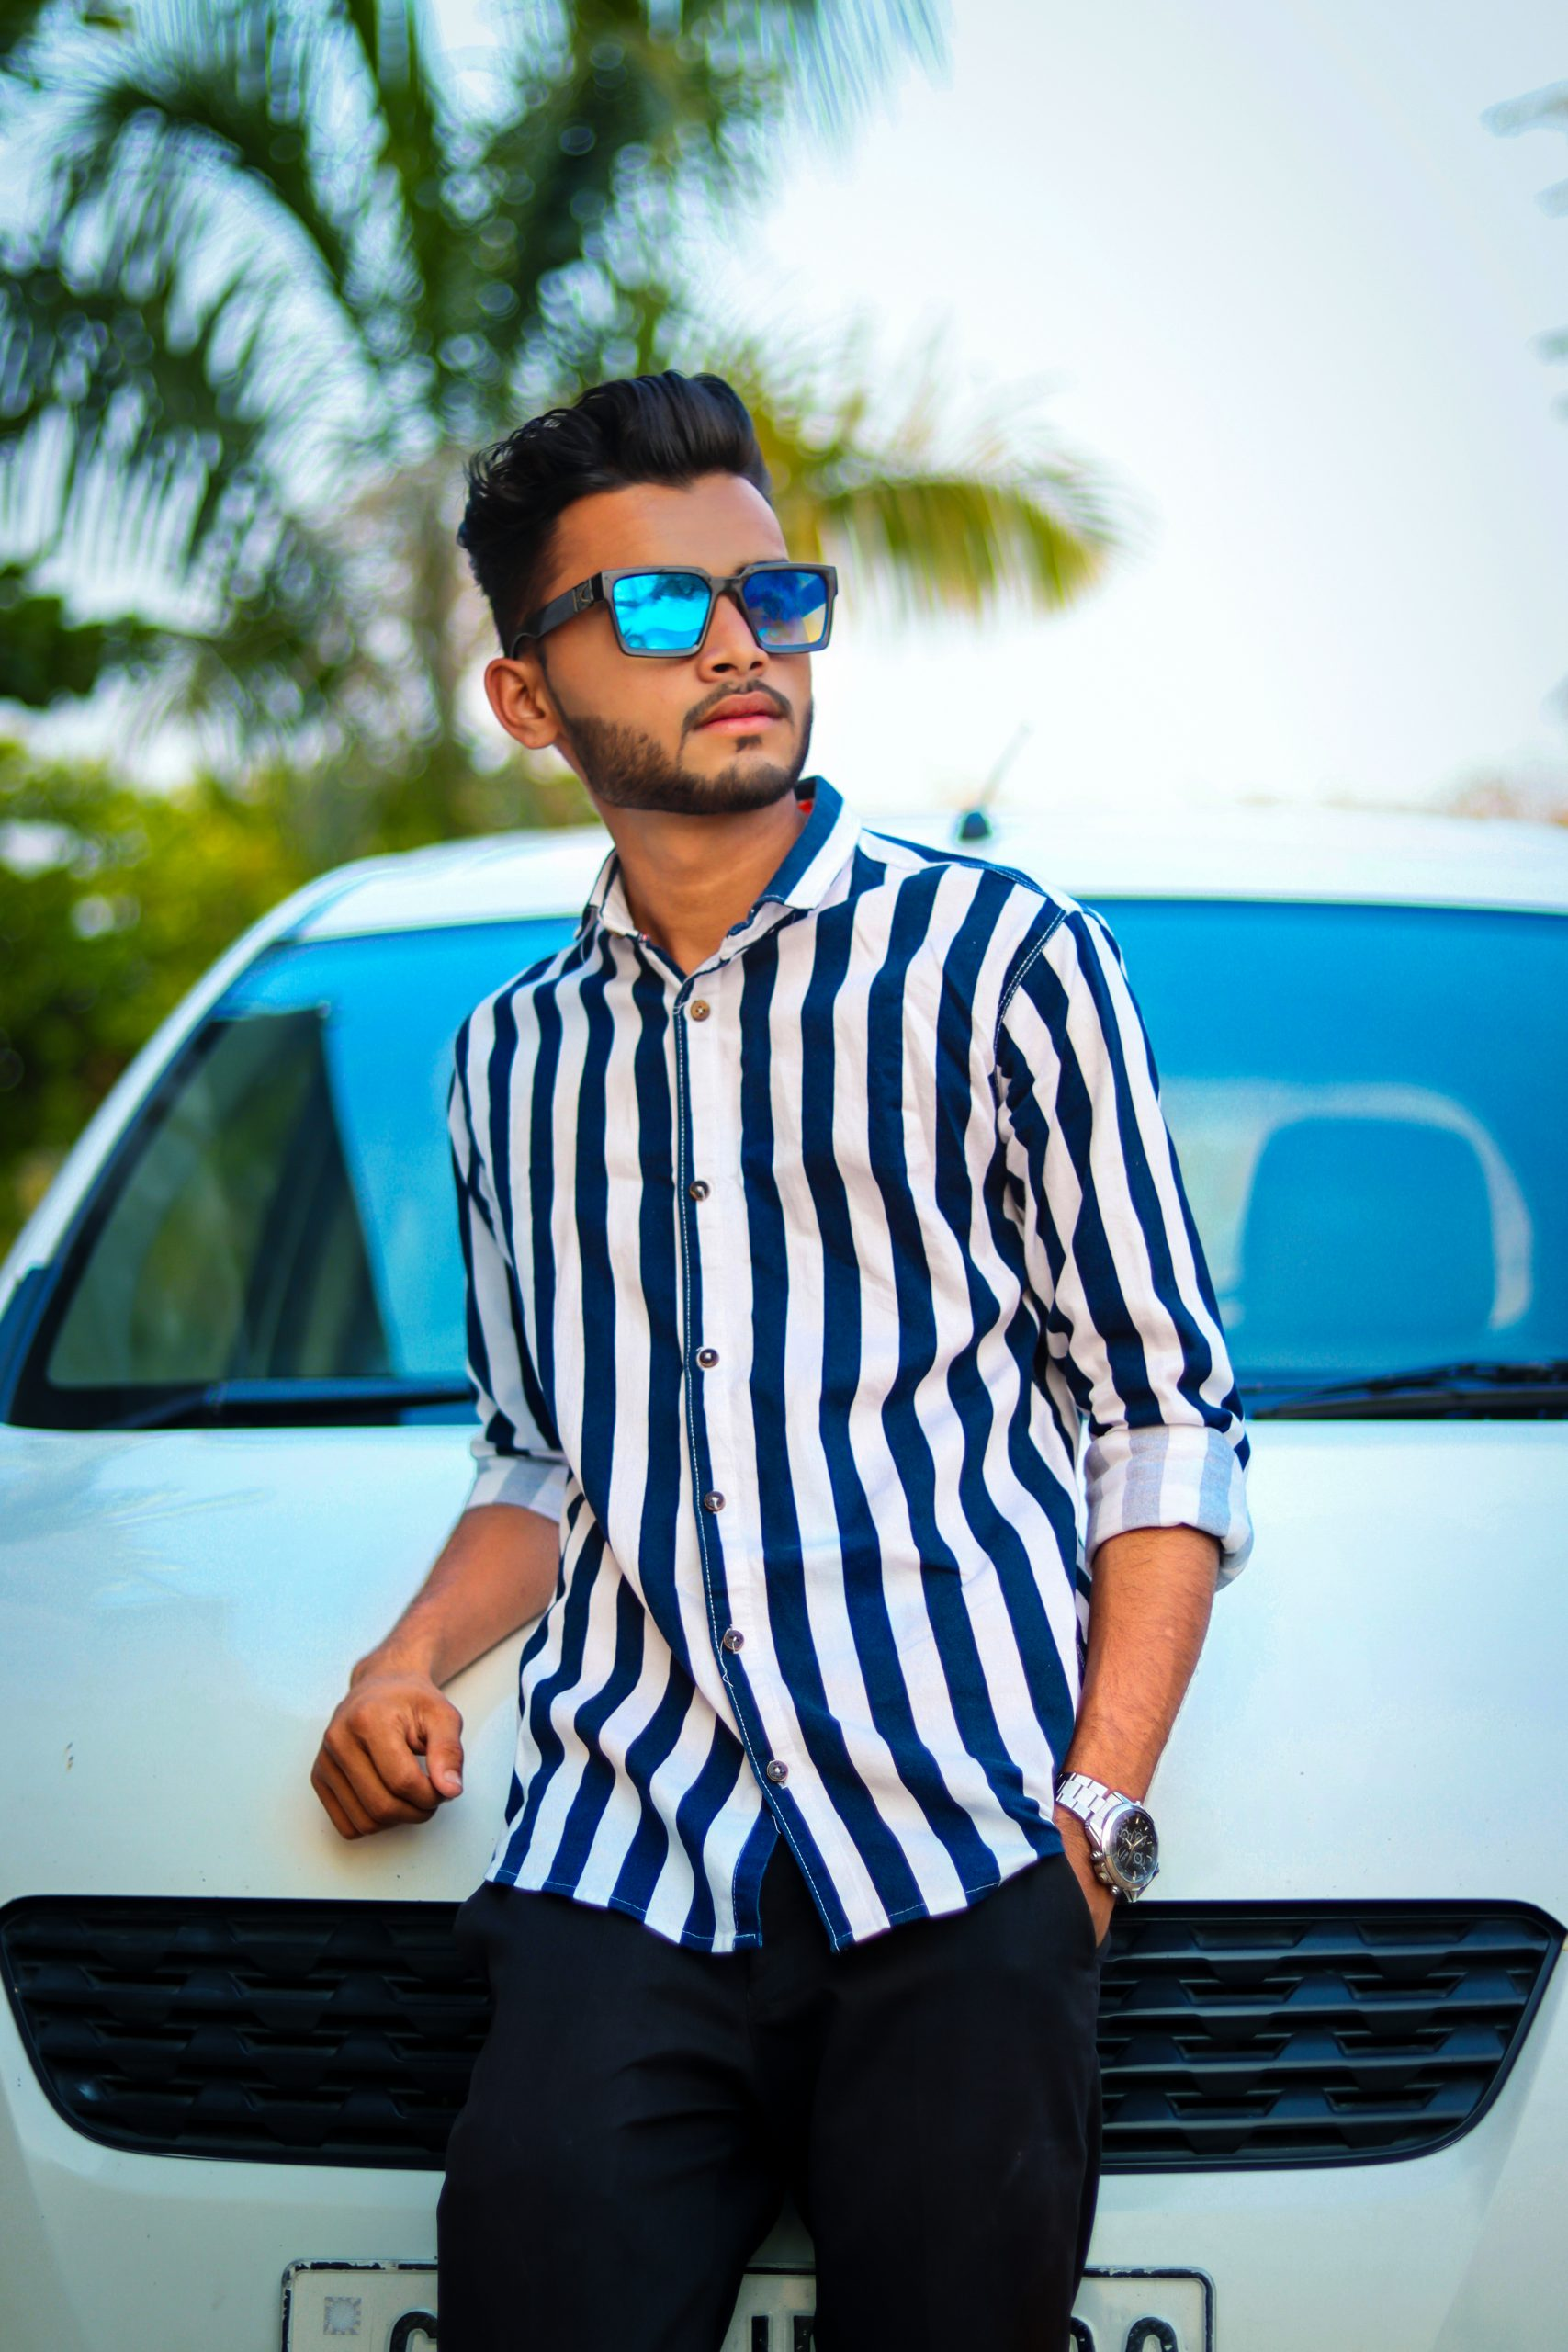 Stylish boy posing in front of car